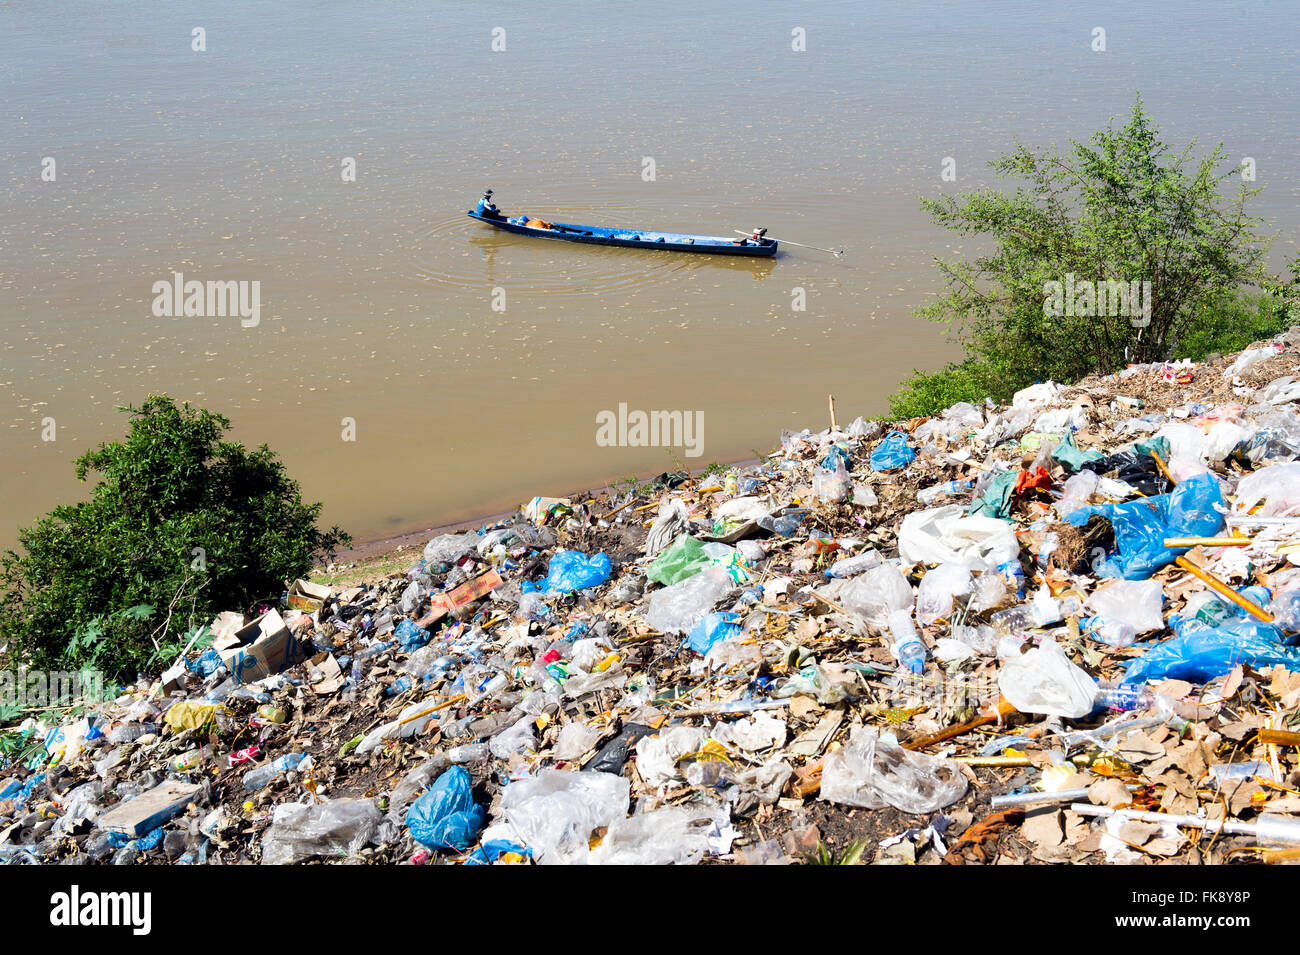 Asia. South-East Asia. Laos. Province of Khammouane. Thakhek. Pollution on the banks of the Mekong. - Stock Image